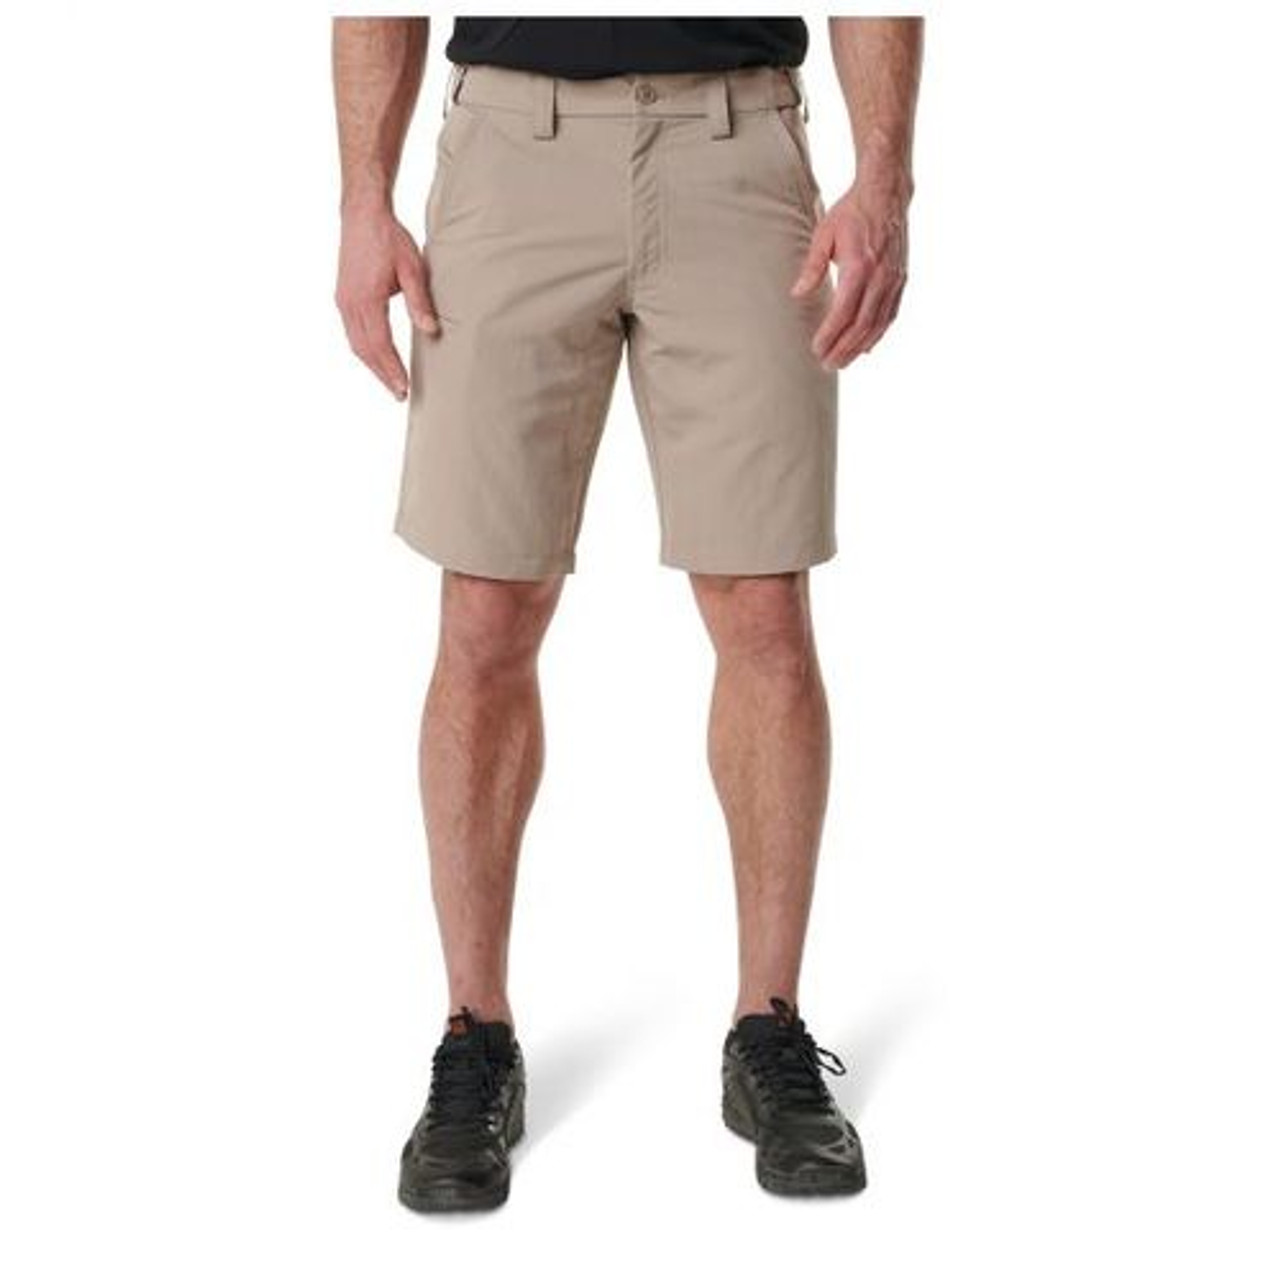 5.11 Tactical 73342 MEN'S FAST-TAC™ URBAN SHORTS, 100% polyester with Water-resistant finish, Utility pocket, Self-adjusting tunnel waistband